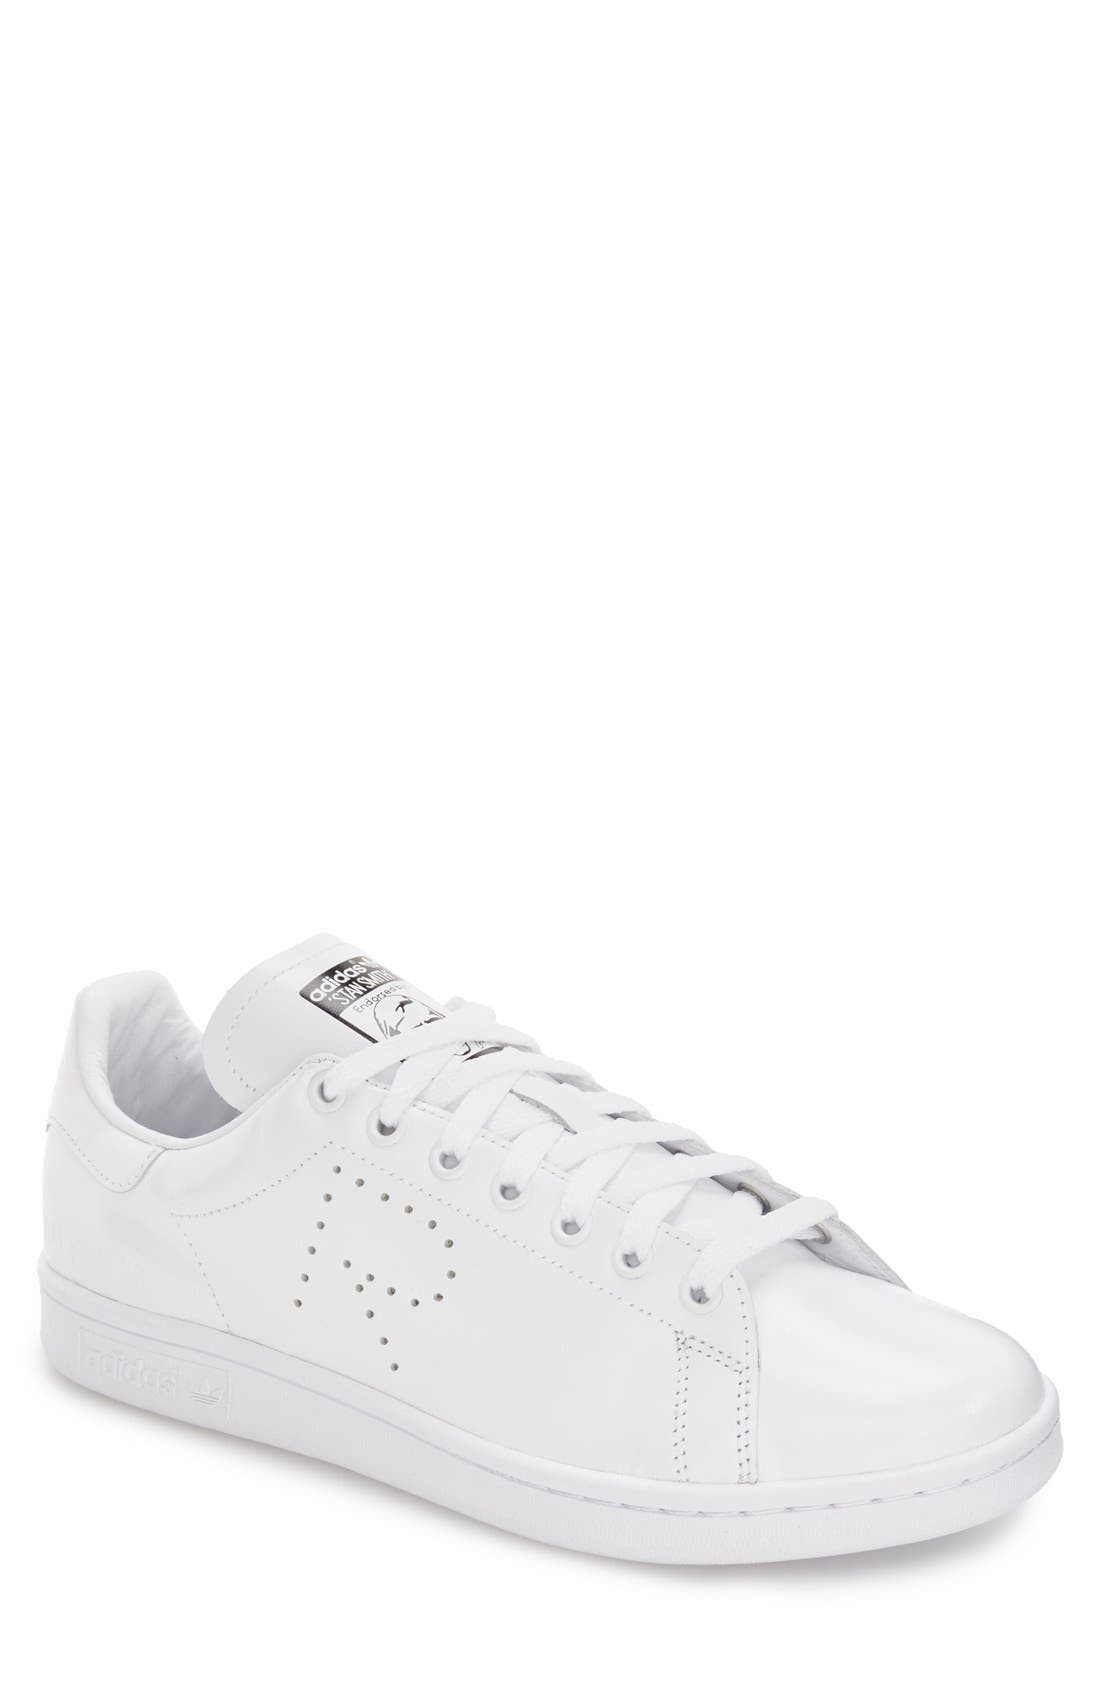 Alternate Image 1 Selected - adidas by Raf Simons 'Stan Smith' Sneaker (Men)